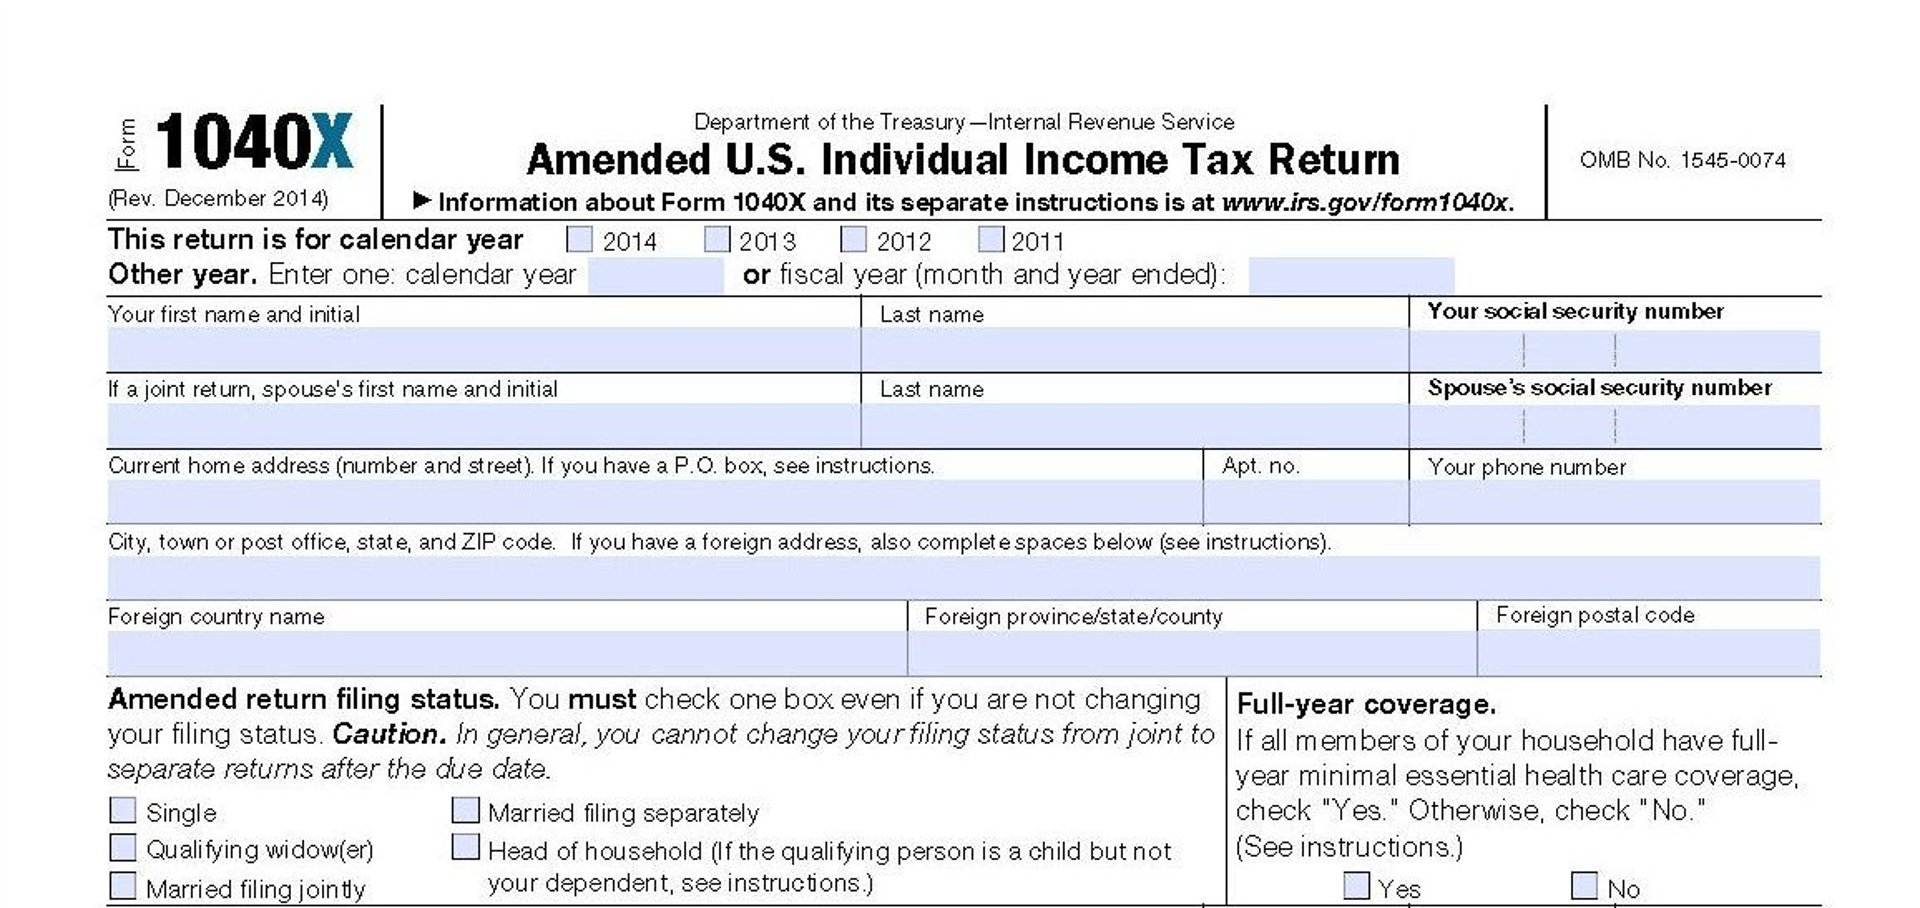 IRS Form 1040X Amended Return